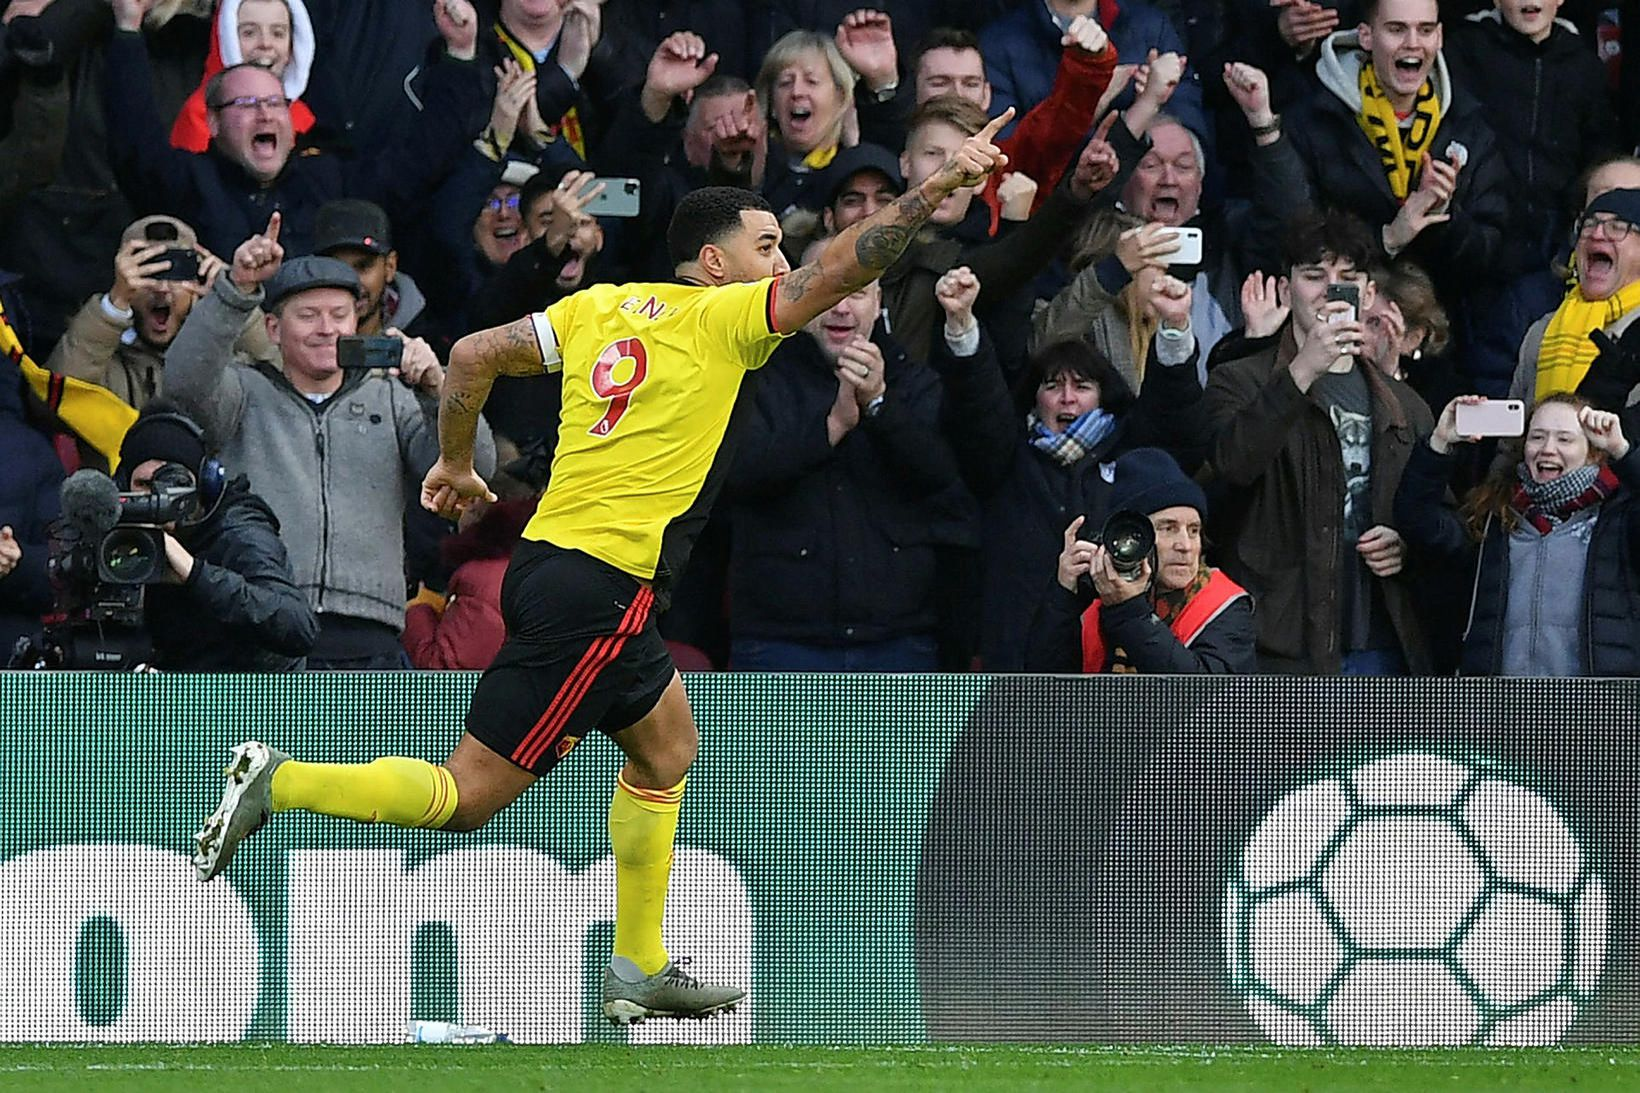 Troy Deeney skoraði eitt mark.